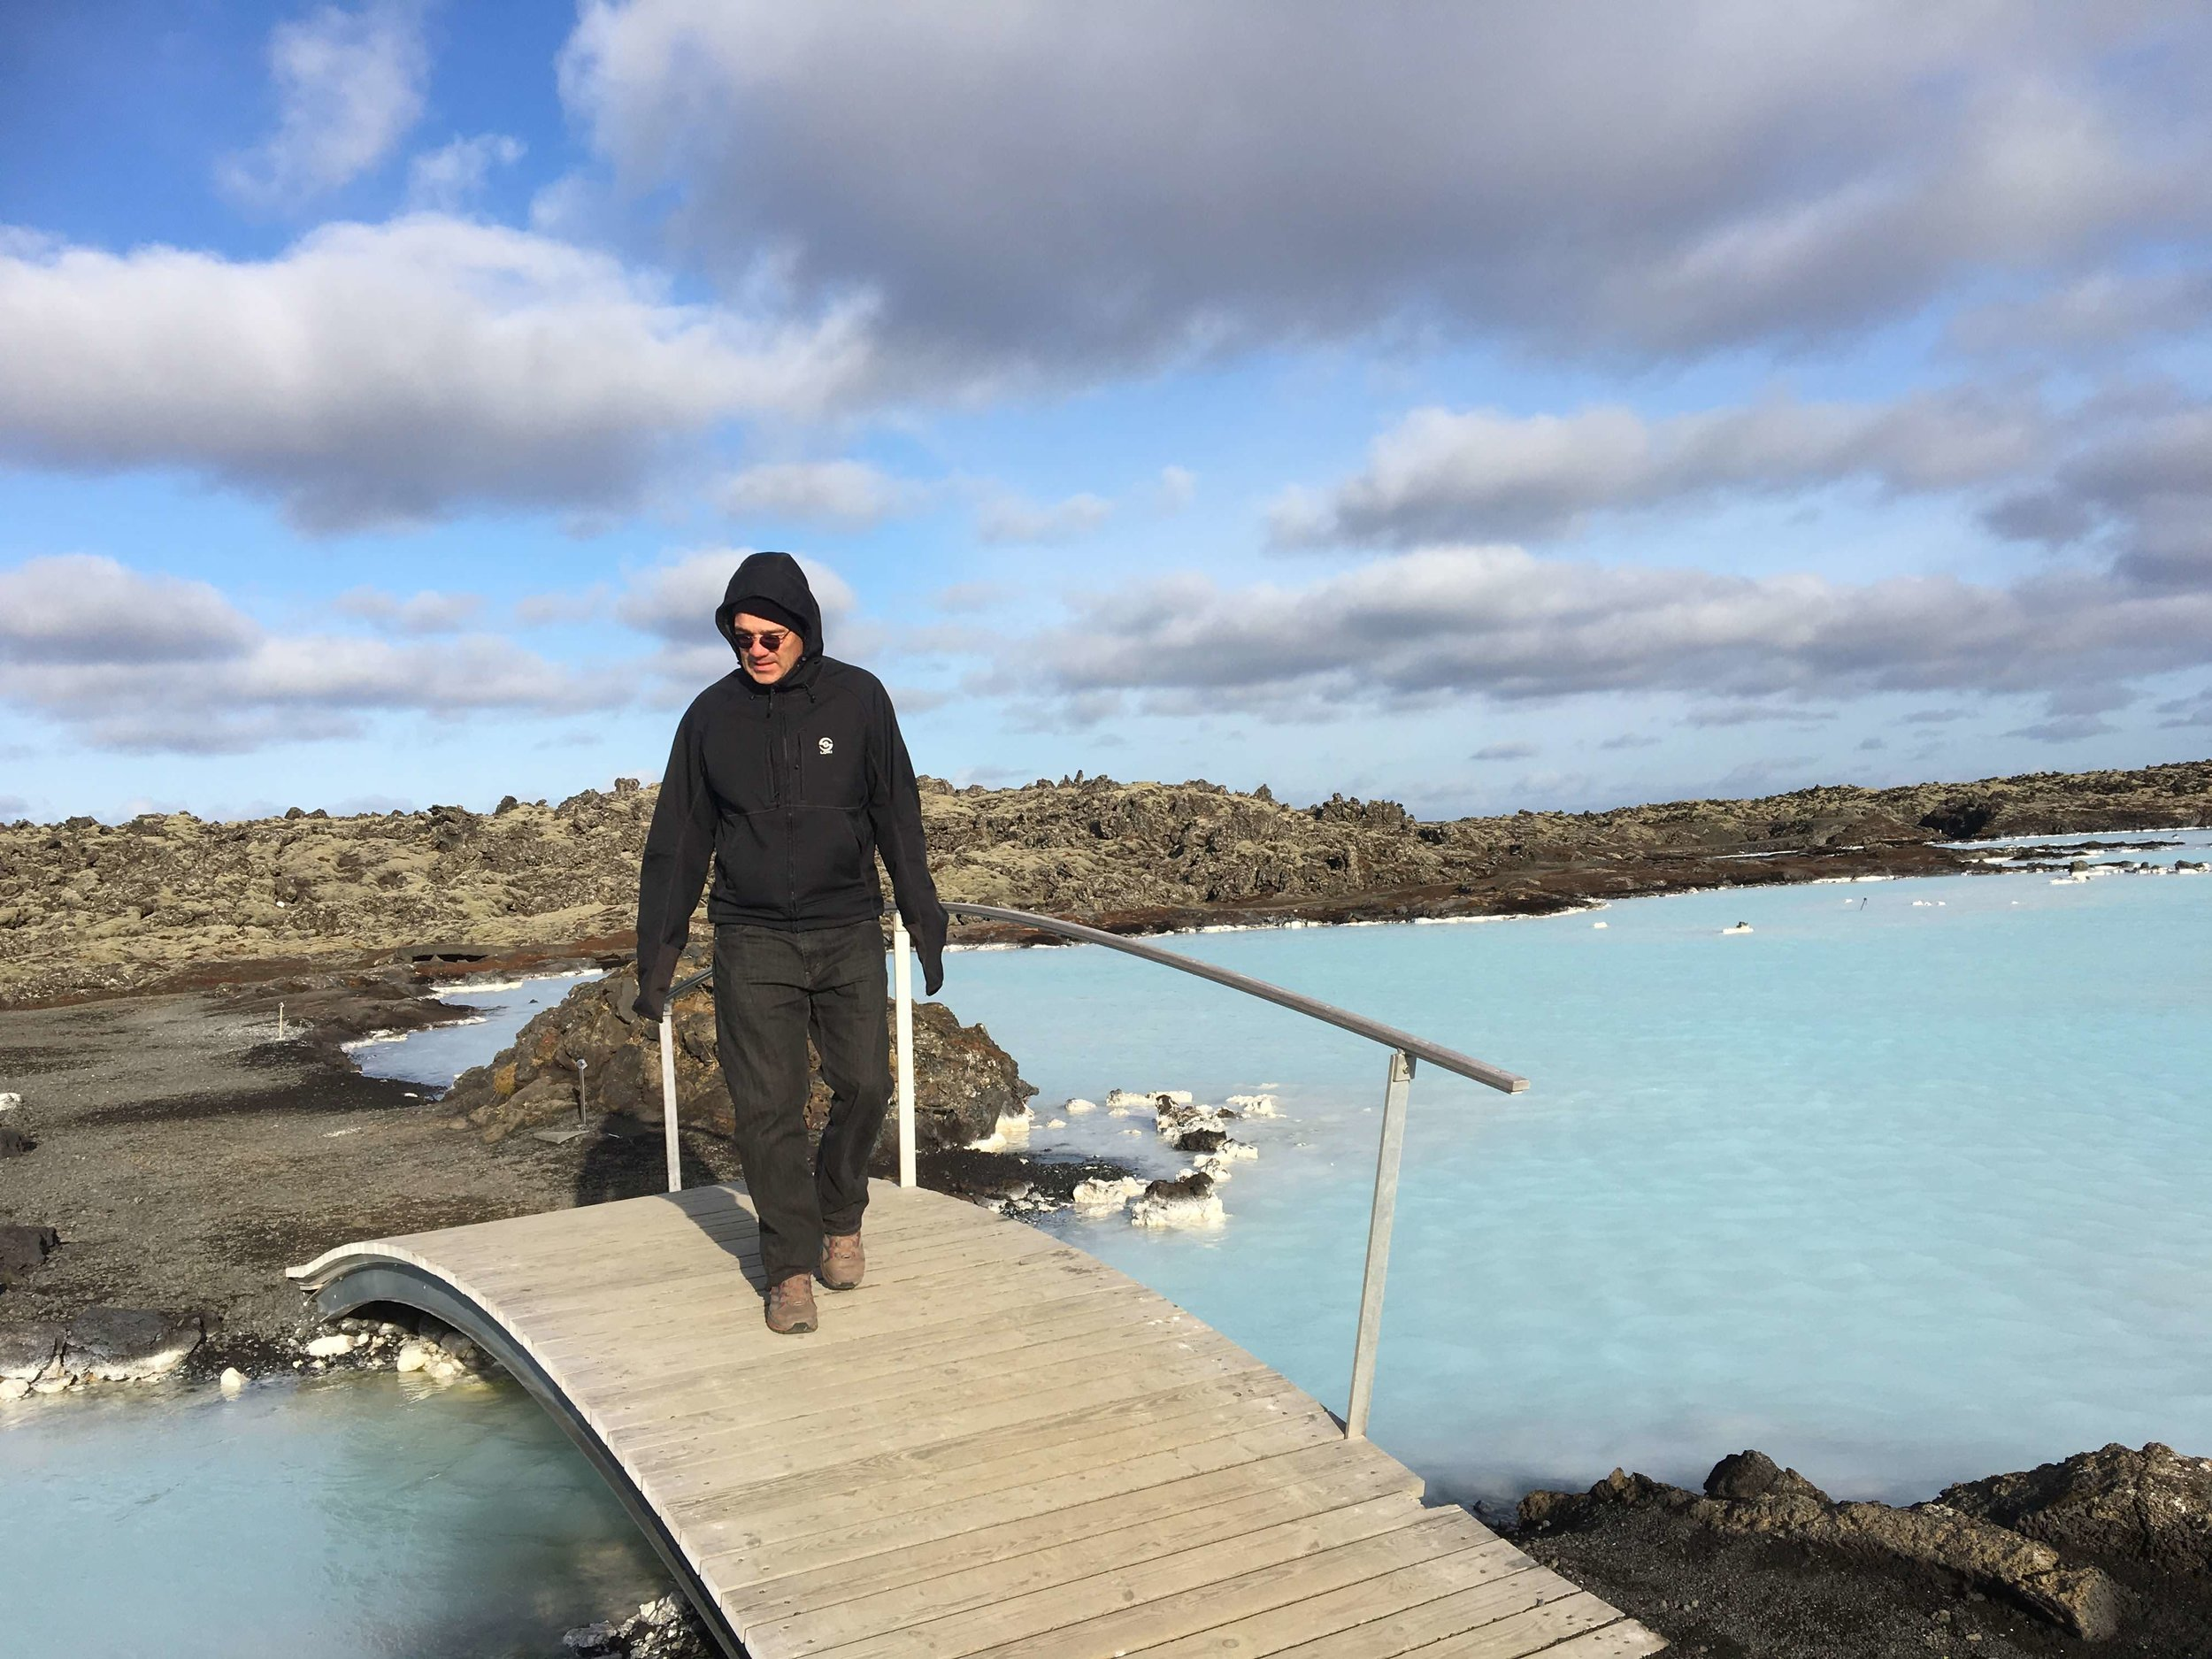 Blue Lagoon Iceland - 55 by 55 Travel